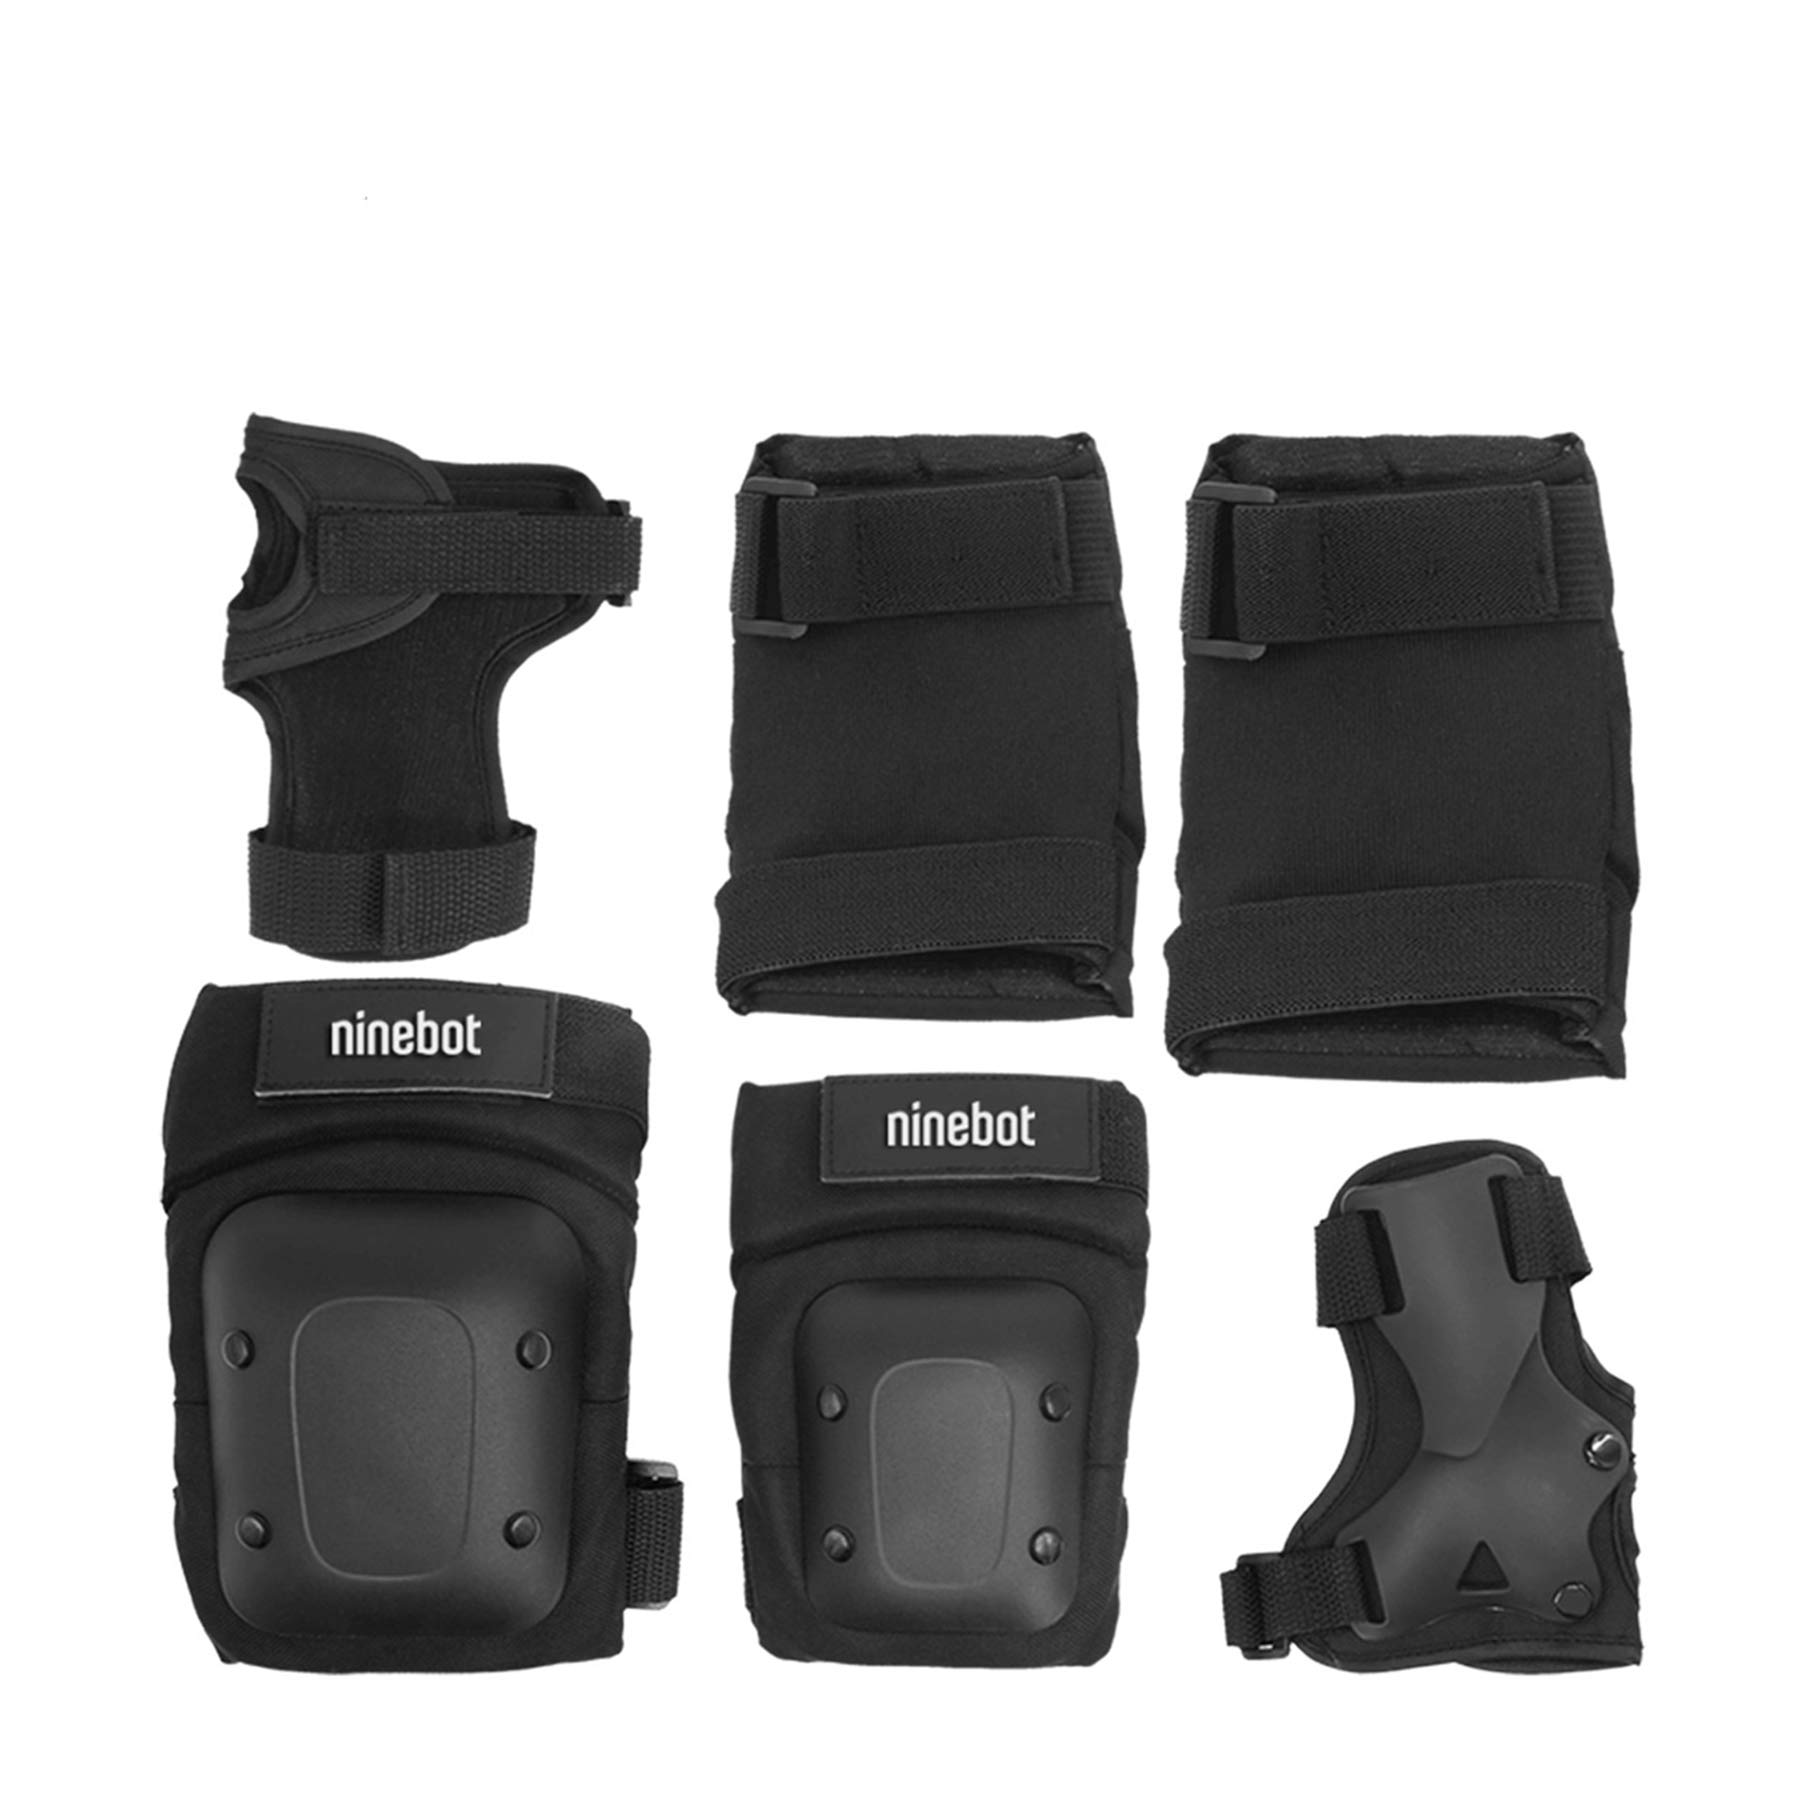 Segway Ninebot Protective Gear Set for Youth/Adult Knee Pads Elbow Pads Wrist Guards for Scooters Skateboarding Roller Skating Inline Skate Cycling Bike Bicycle, Black, S